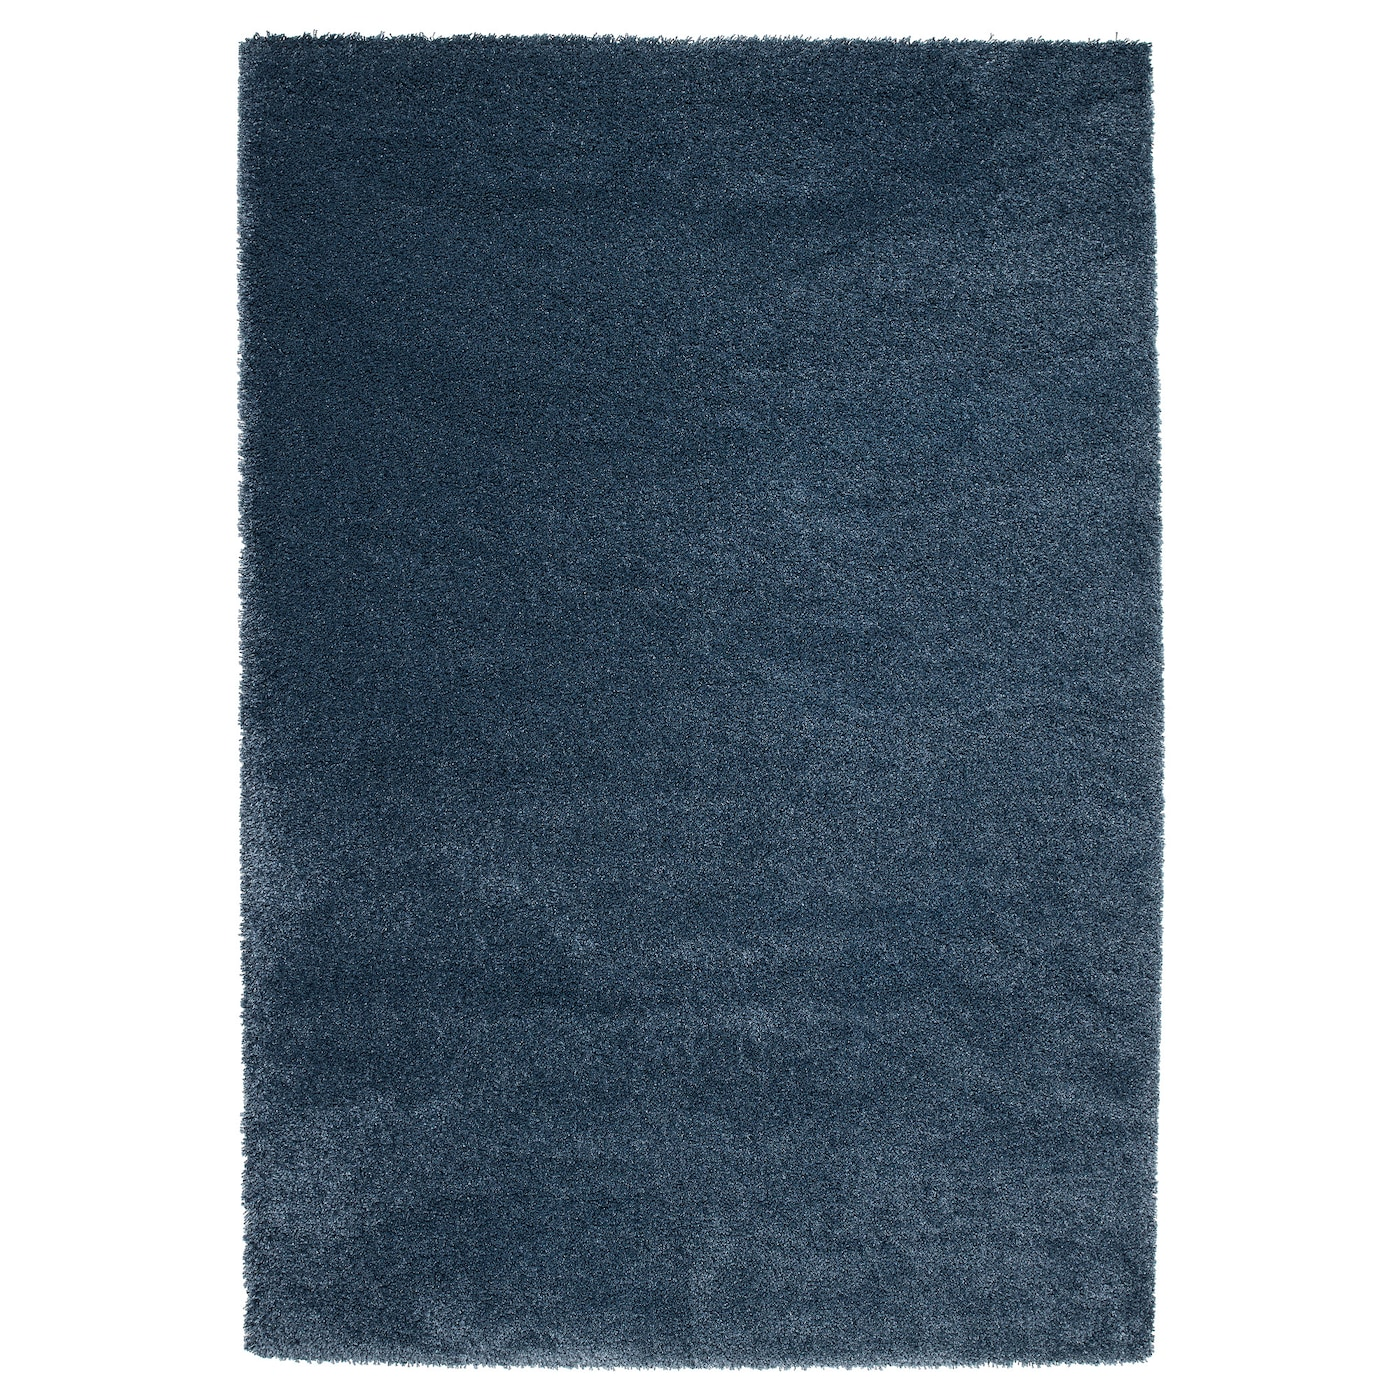 Charming IKEA ÅDUM Rug, High Pile The Dense, Thick Pile Dampens Sound And Provides A